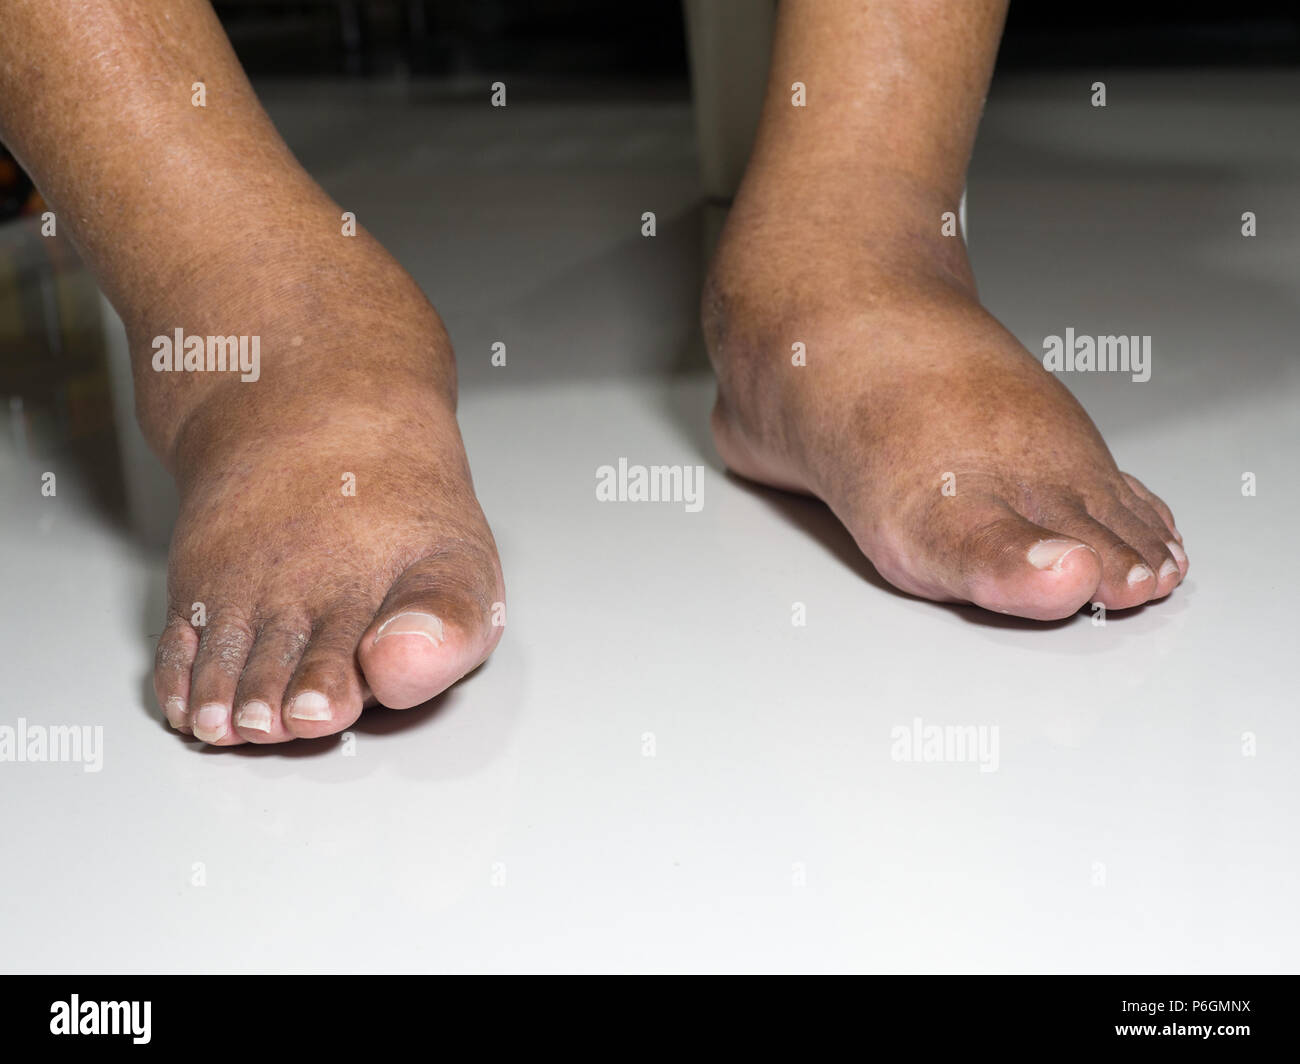 people with ugly feet